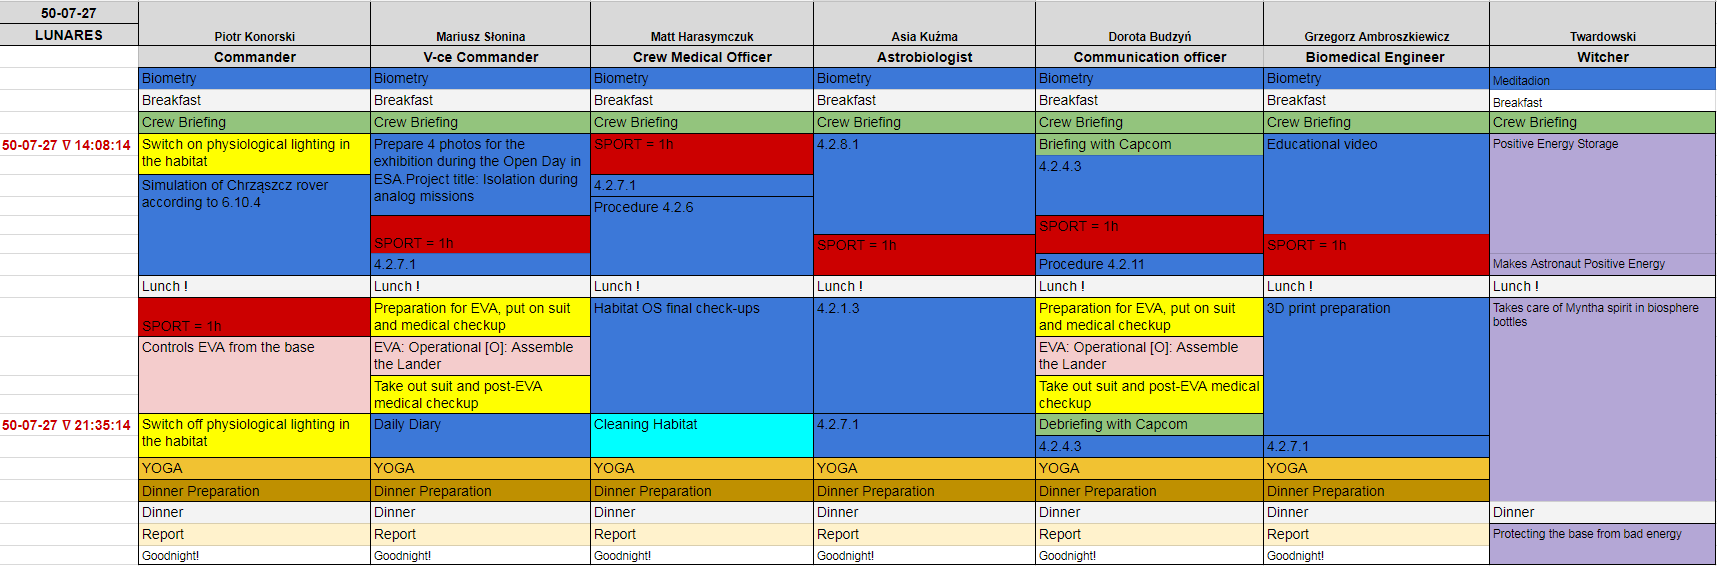 ../_images/planning-schedule-1.png